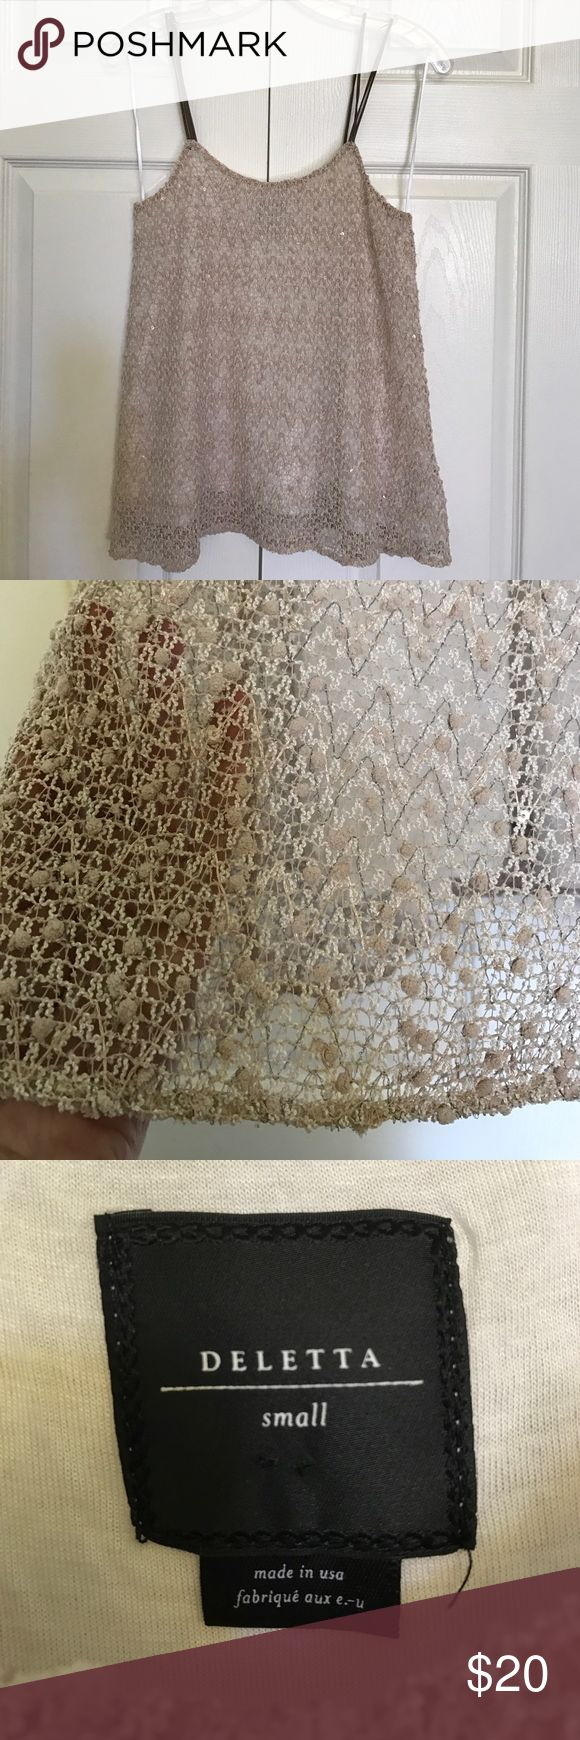 Anthropologie knitted strappy top Deletta by Anthropologie knitted strappy top with metallic accents. Very pretty and perfect for summer. Excellent condition Anthropologie Tops Camisoles